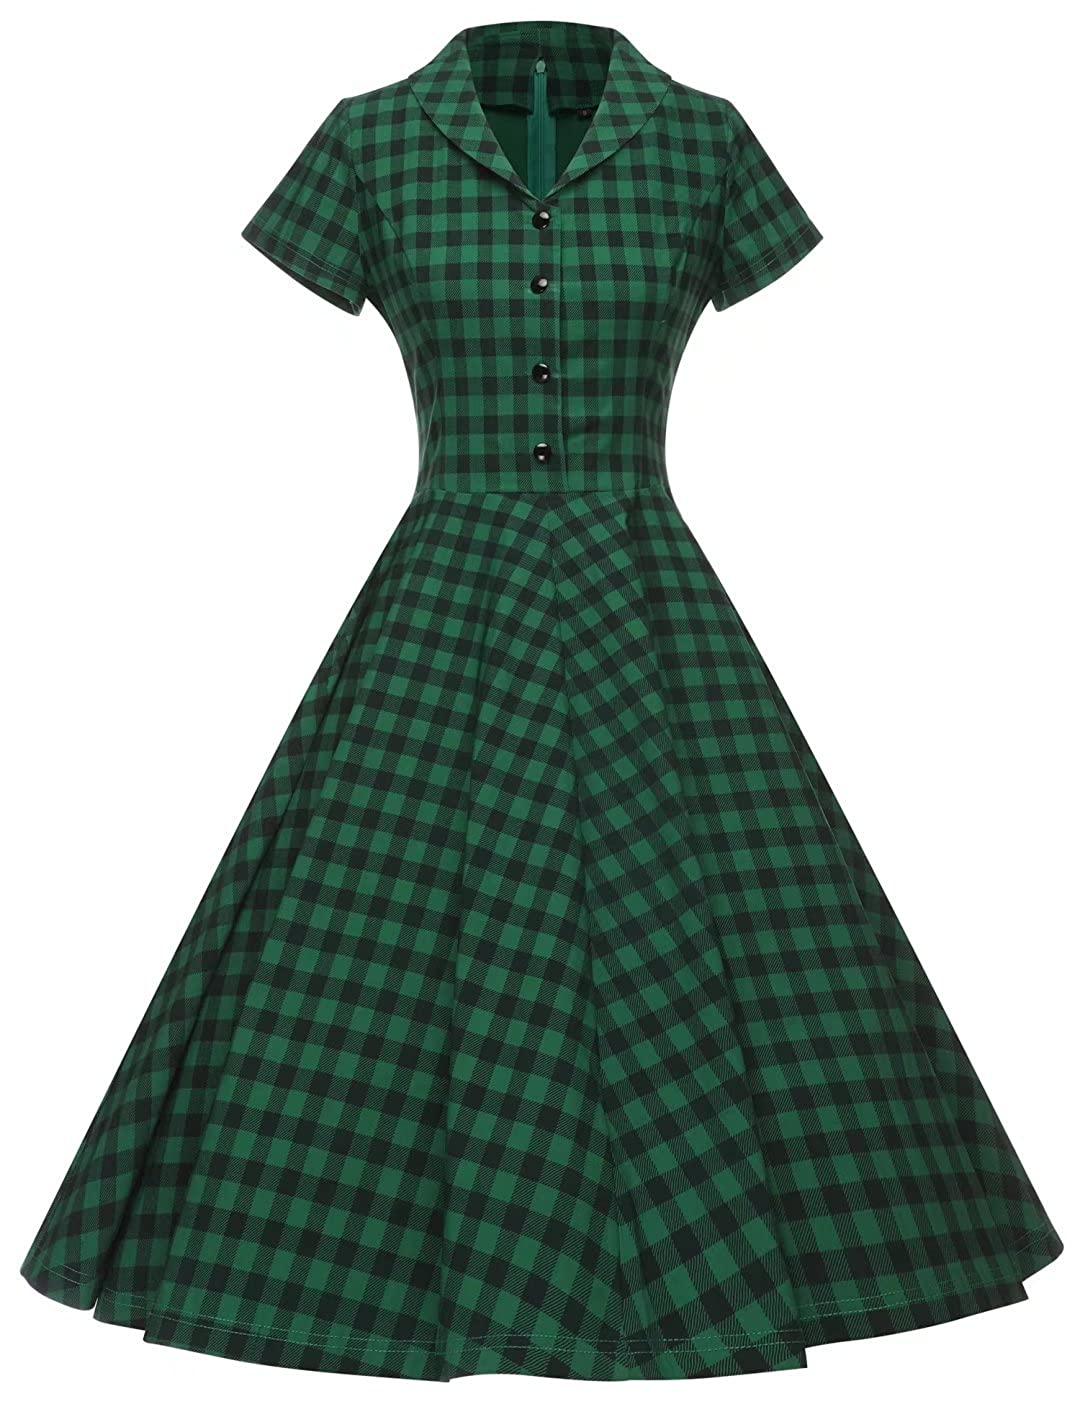 1940s Day Dress Styles, House Dresses GownTown Womens 1950s Vintage Cap Sleeve Plaid Swing Dress with Pockets $38.98 AT vintagedancer.com